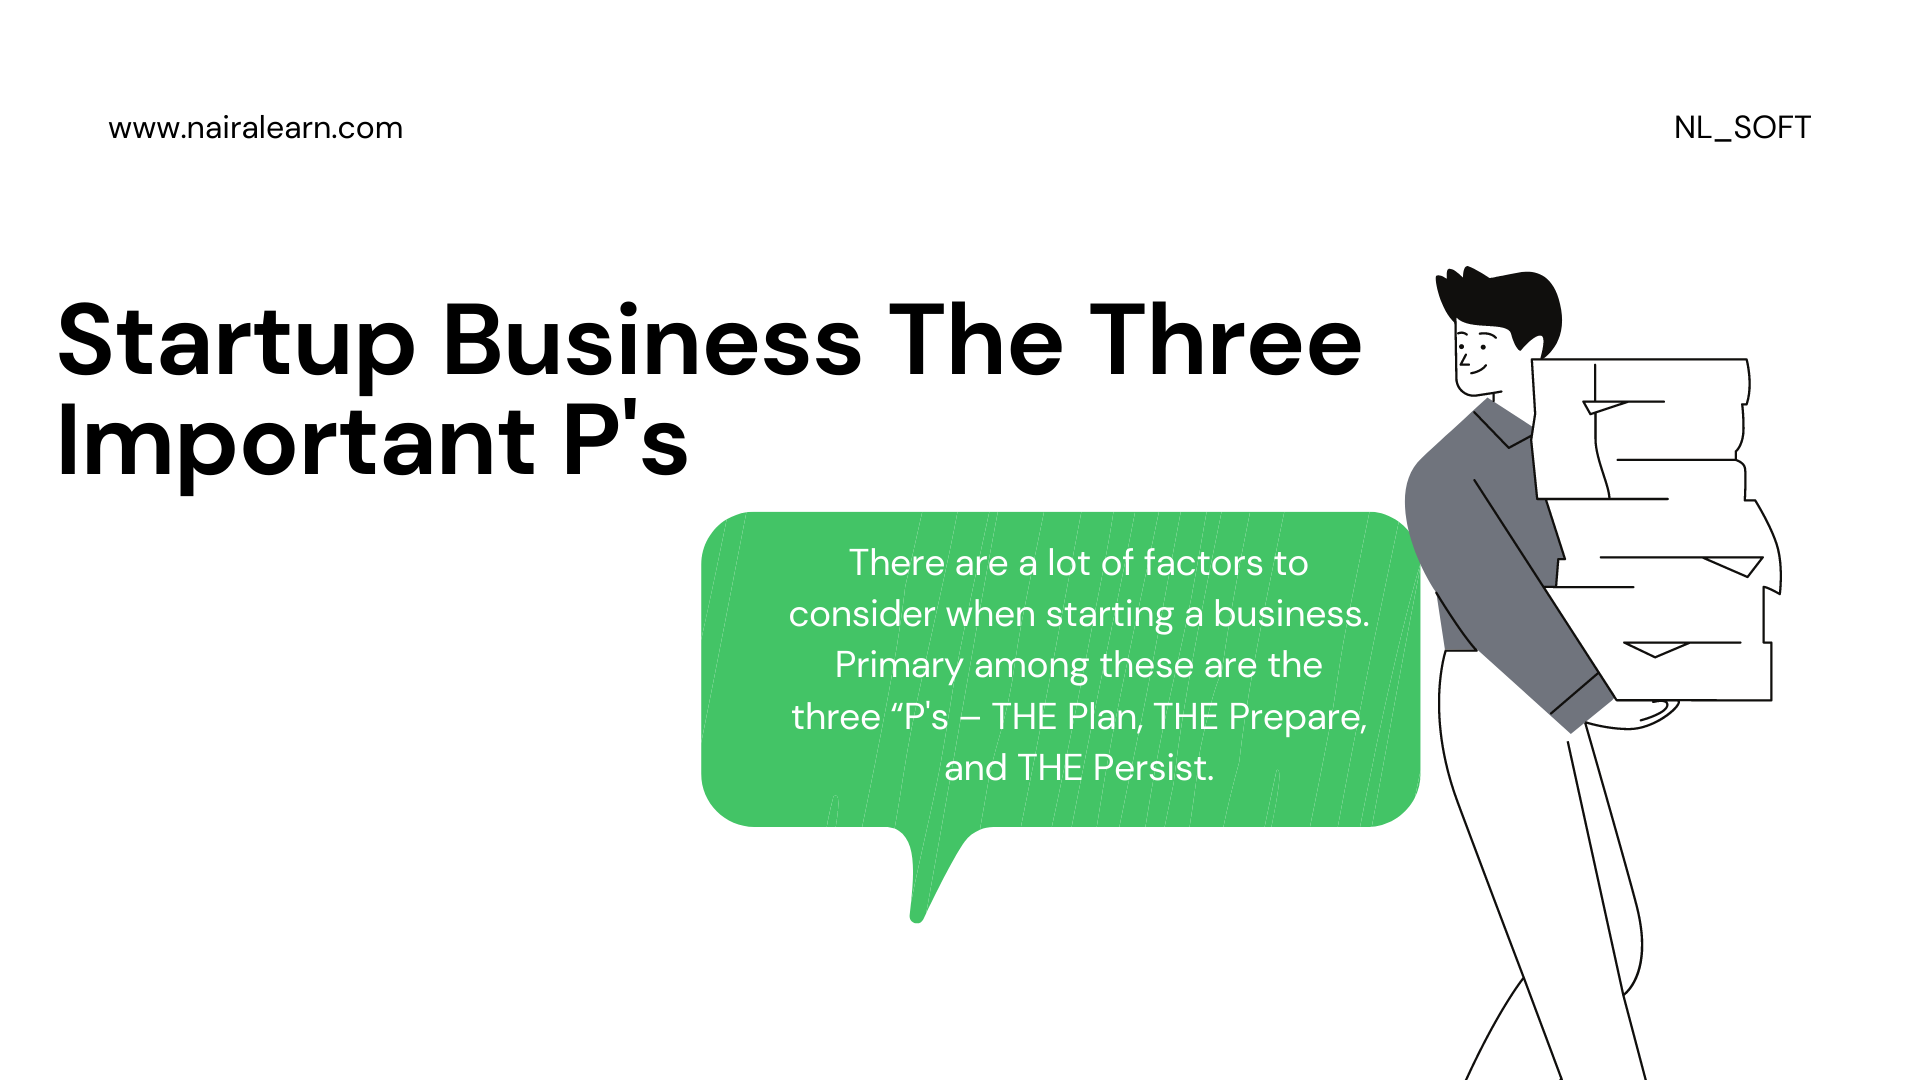 Startup Business The Three Important P's